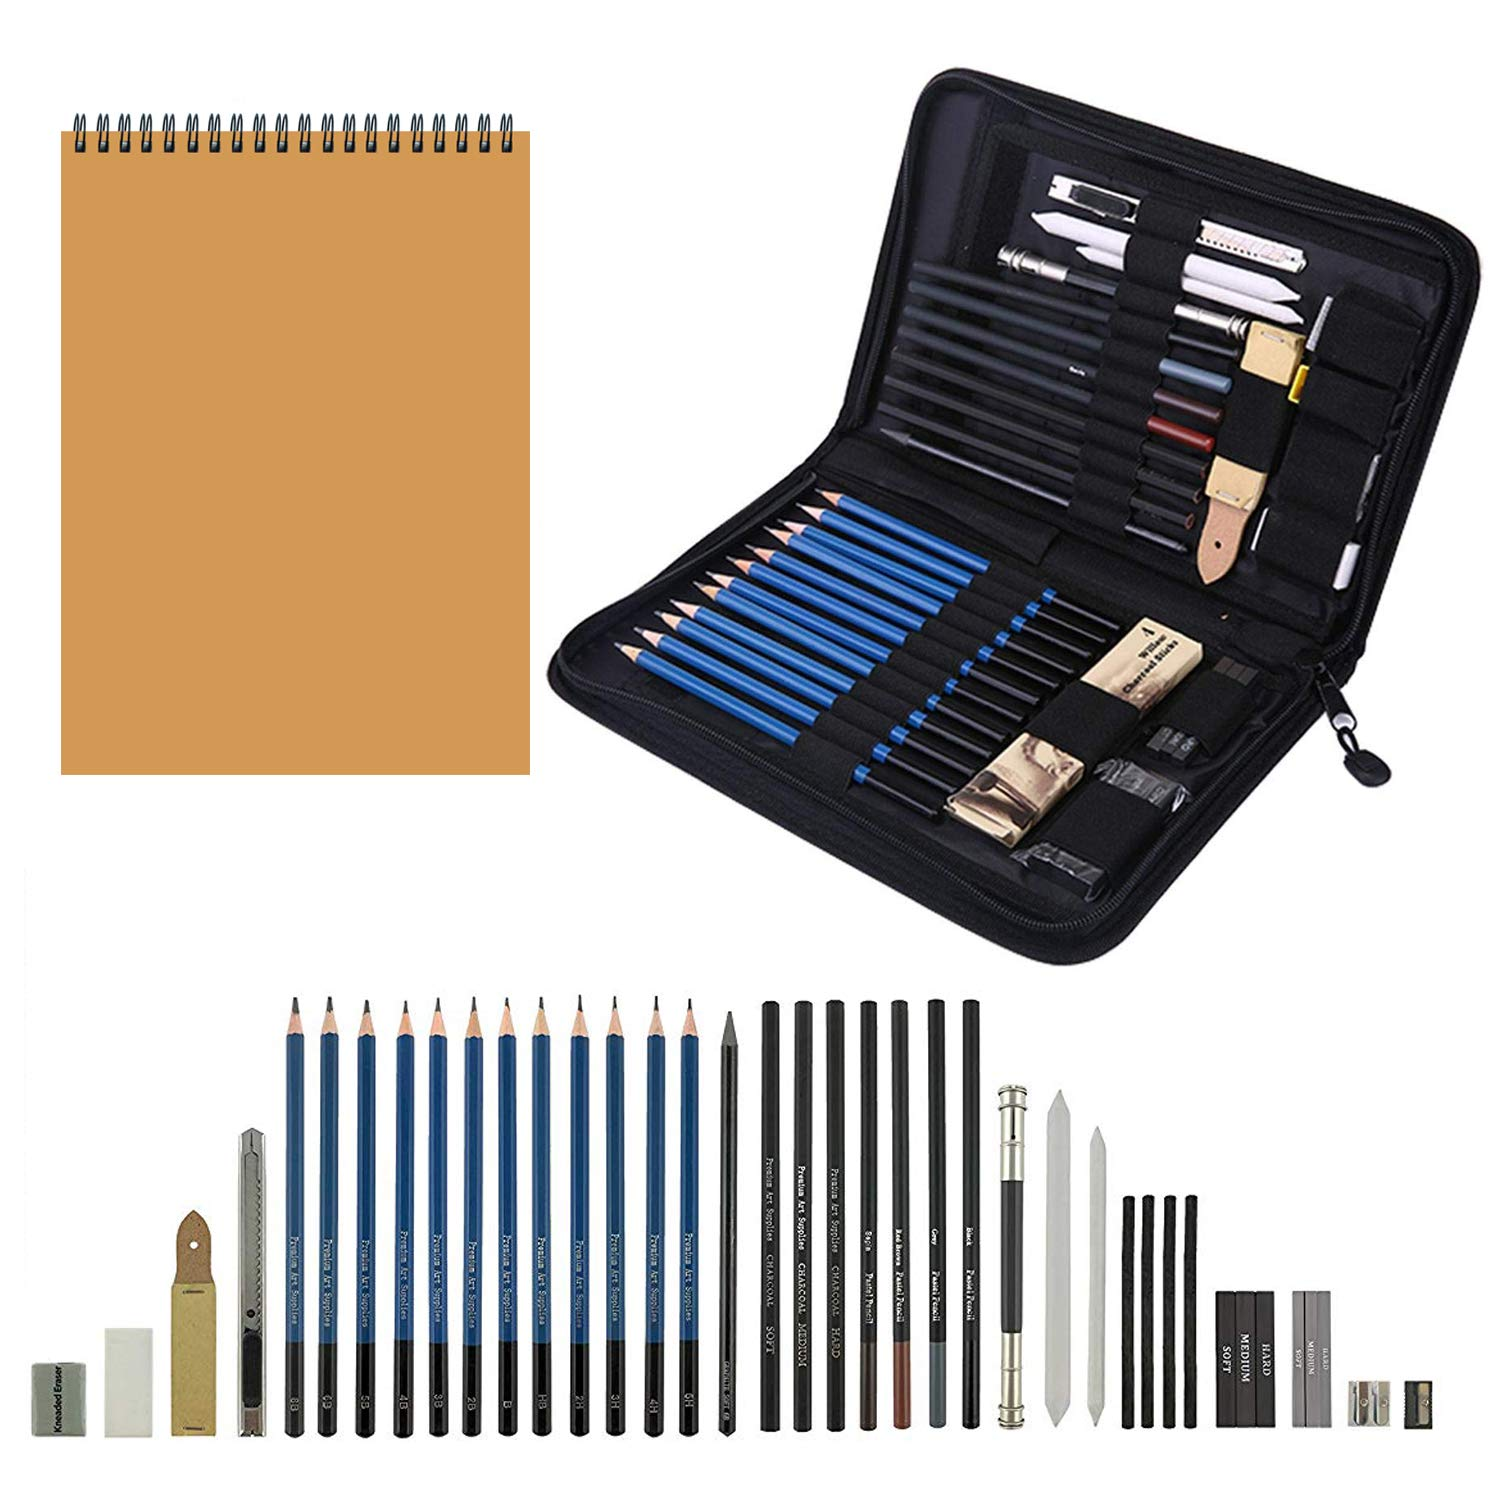 Sketching pencil setportable art kit for drawing professional art supplies kit with charcoal graphite pencils sketch book erasers for artist student